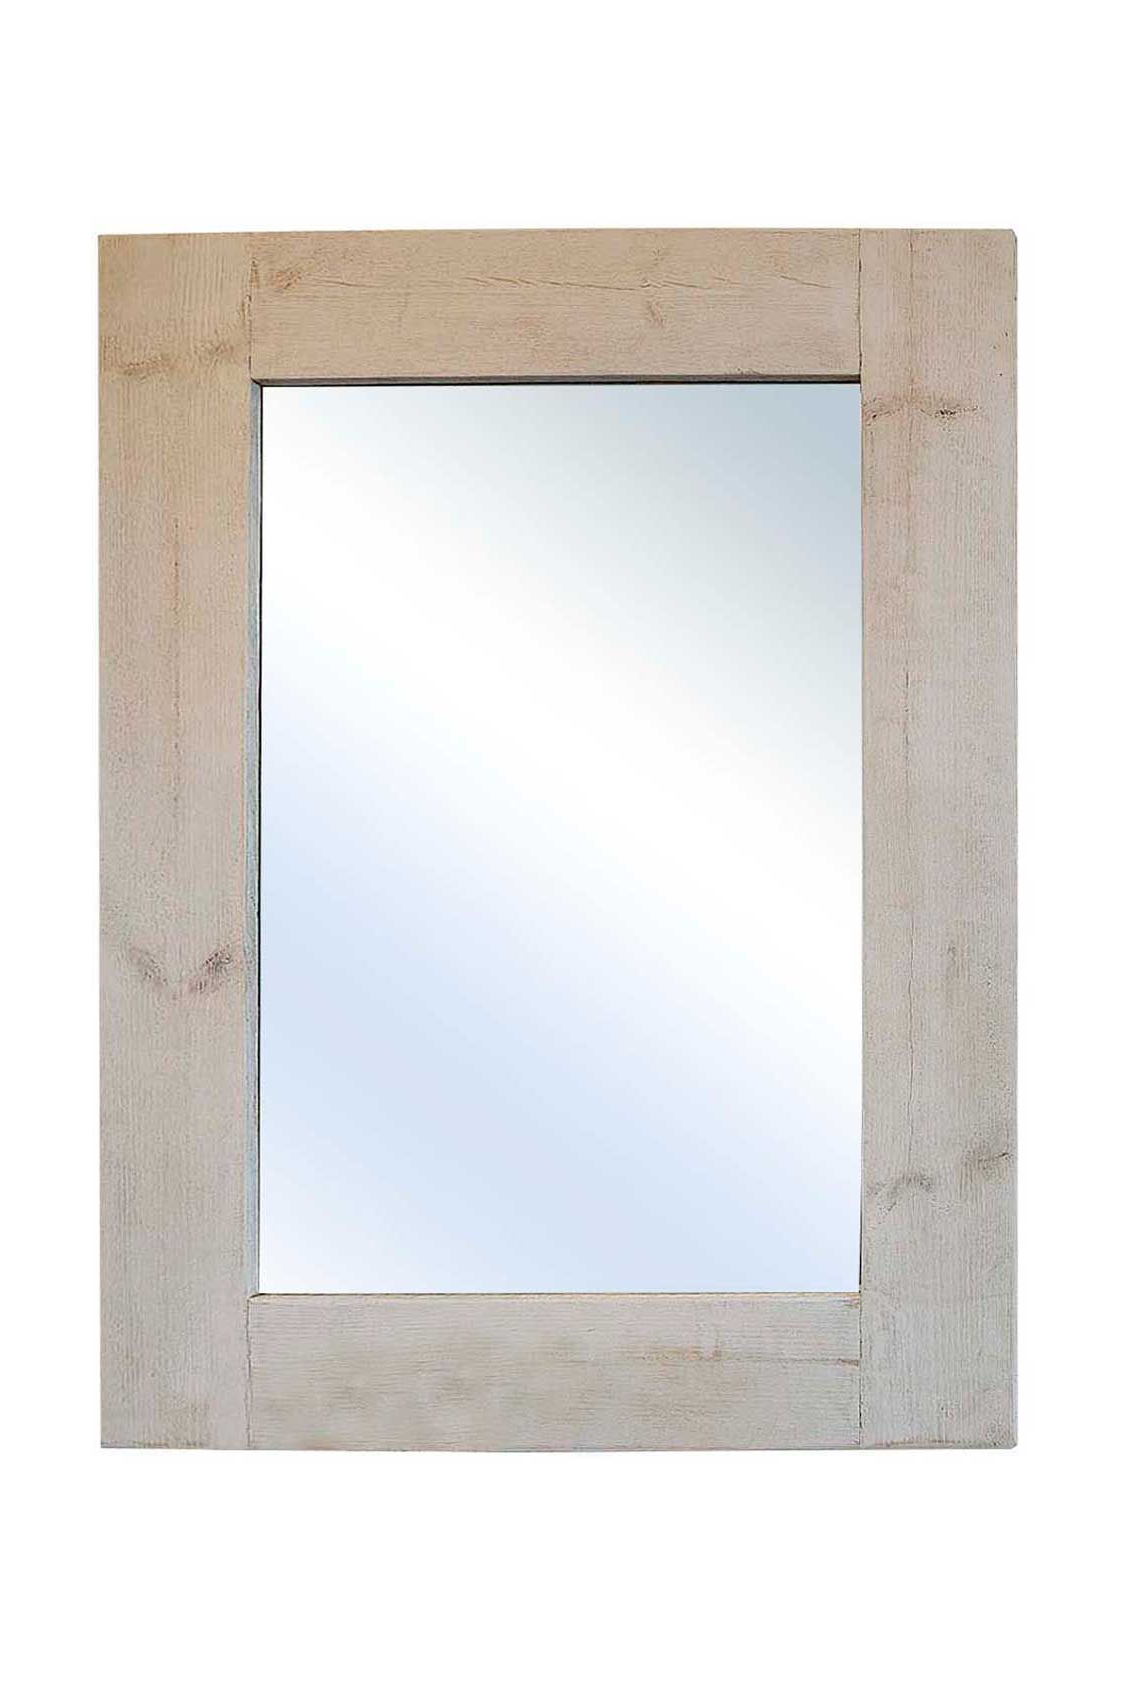 24 X 36 Wall Mirrors Intended For Most Popular Madrid Light Rustic Wooden Wall Mirror 24X (View 13 of 20)